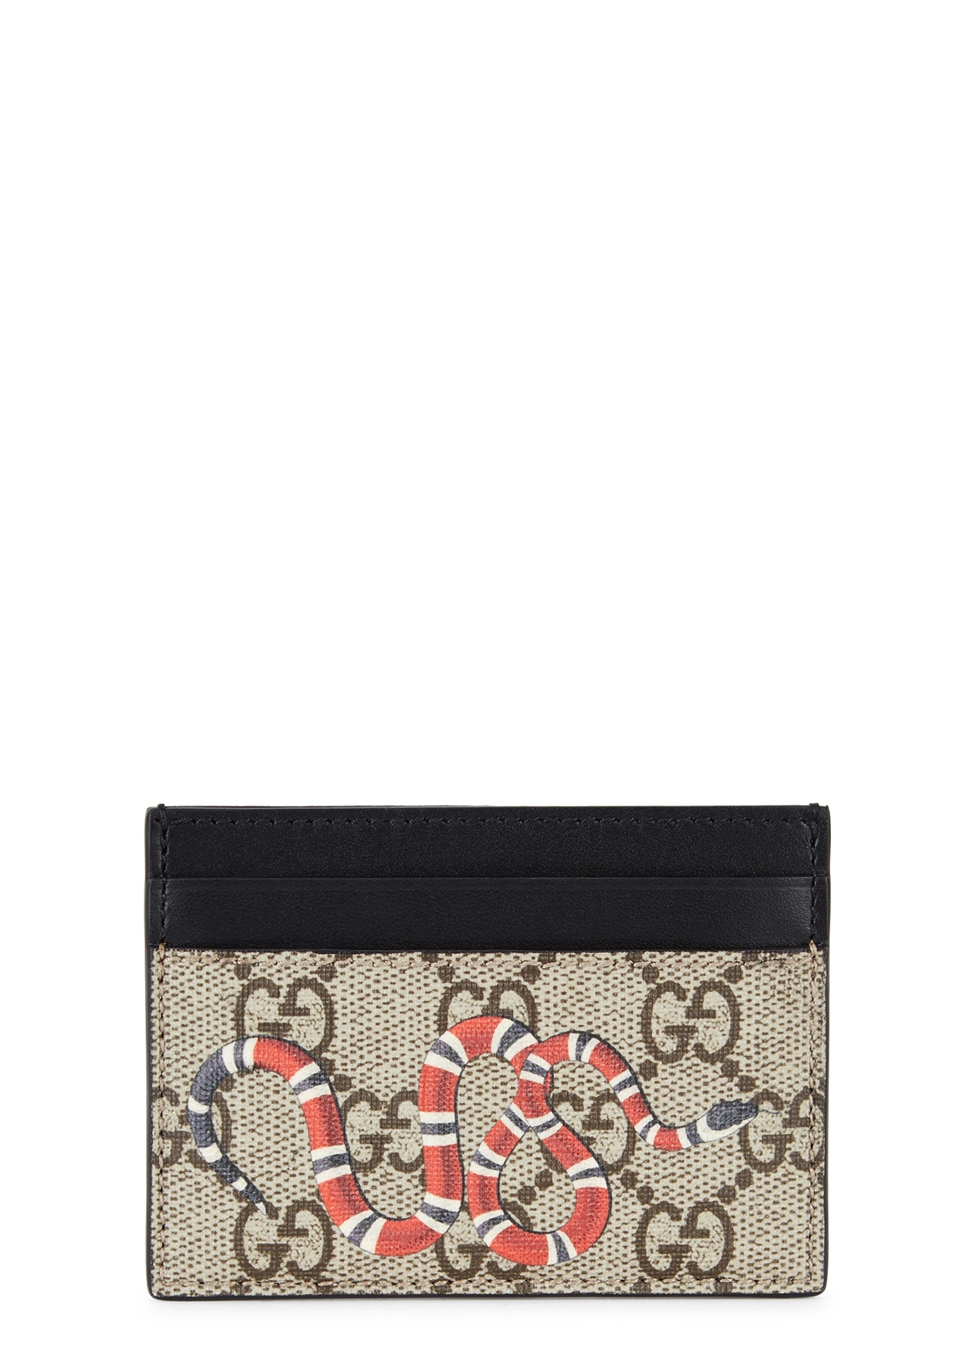 GUCCI GG SUPREME KINGSNAKE CARD HOLDER